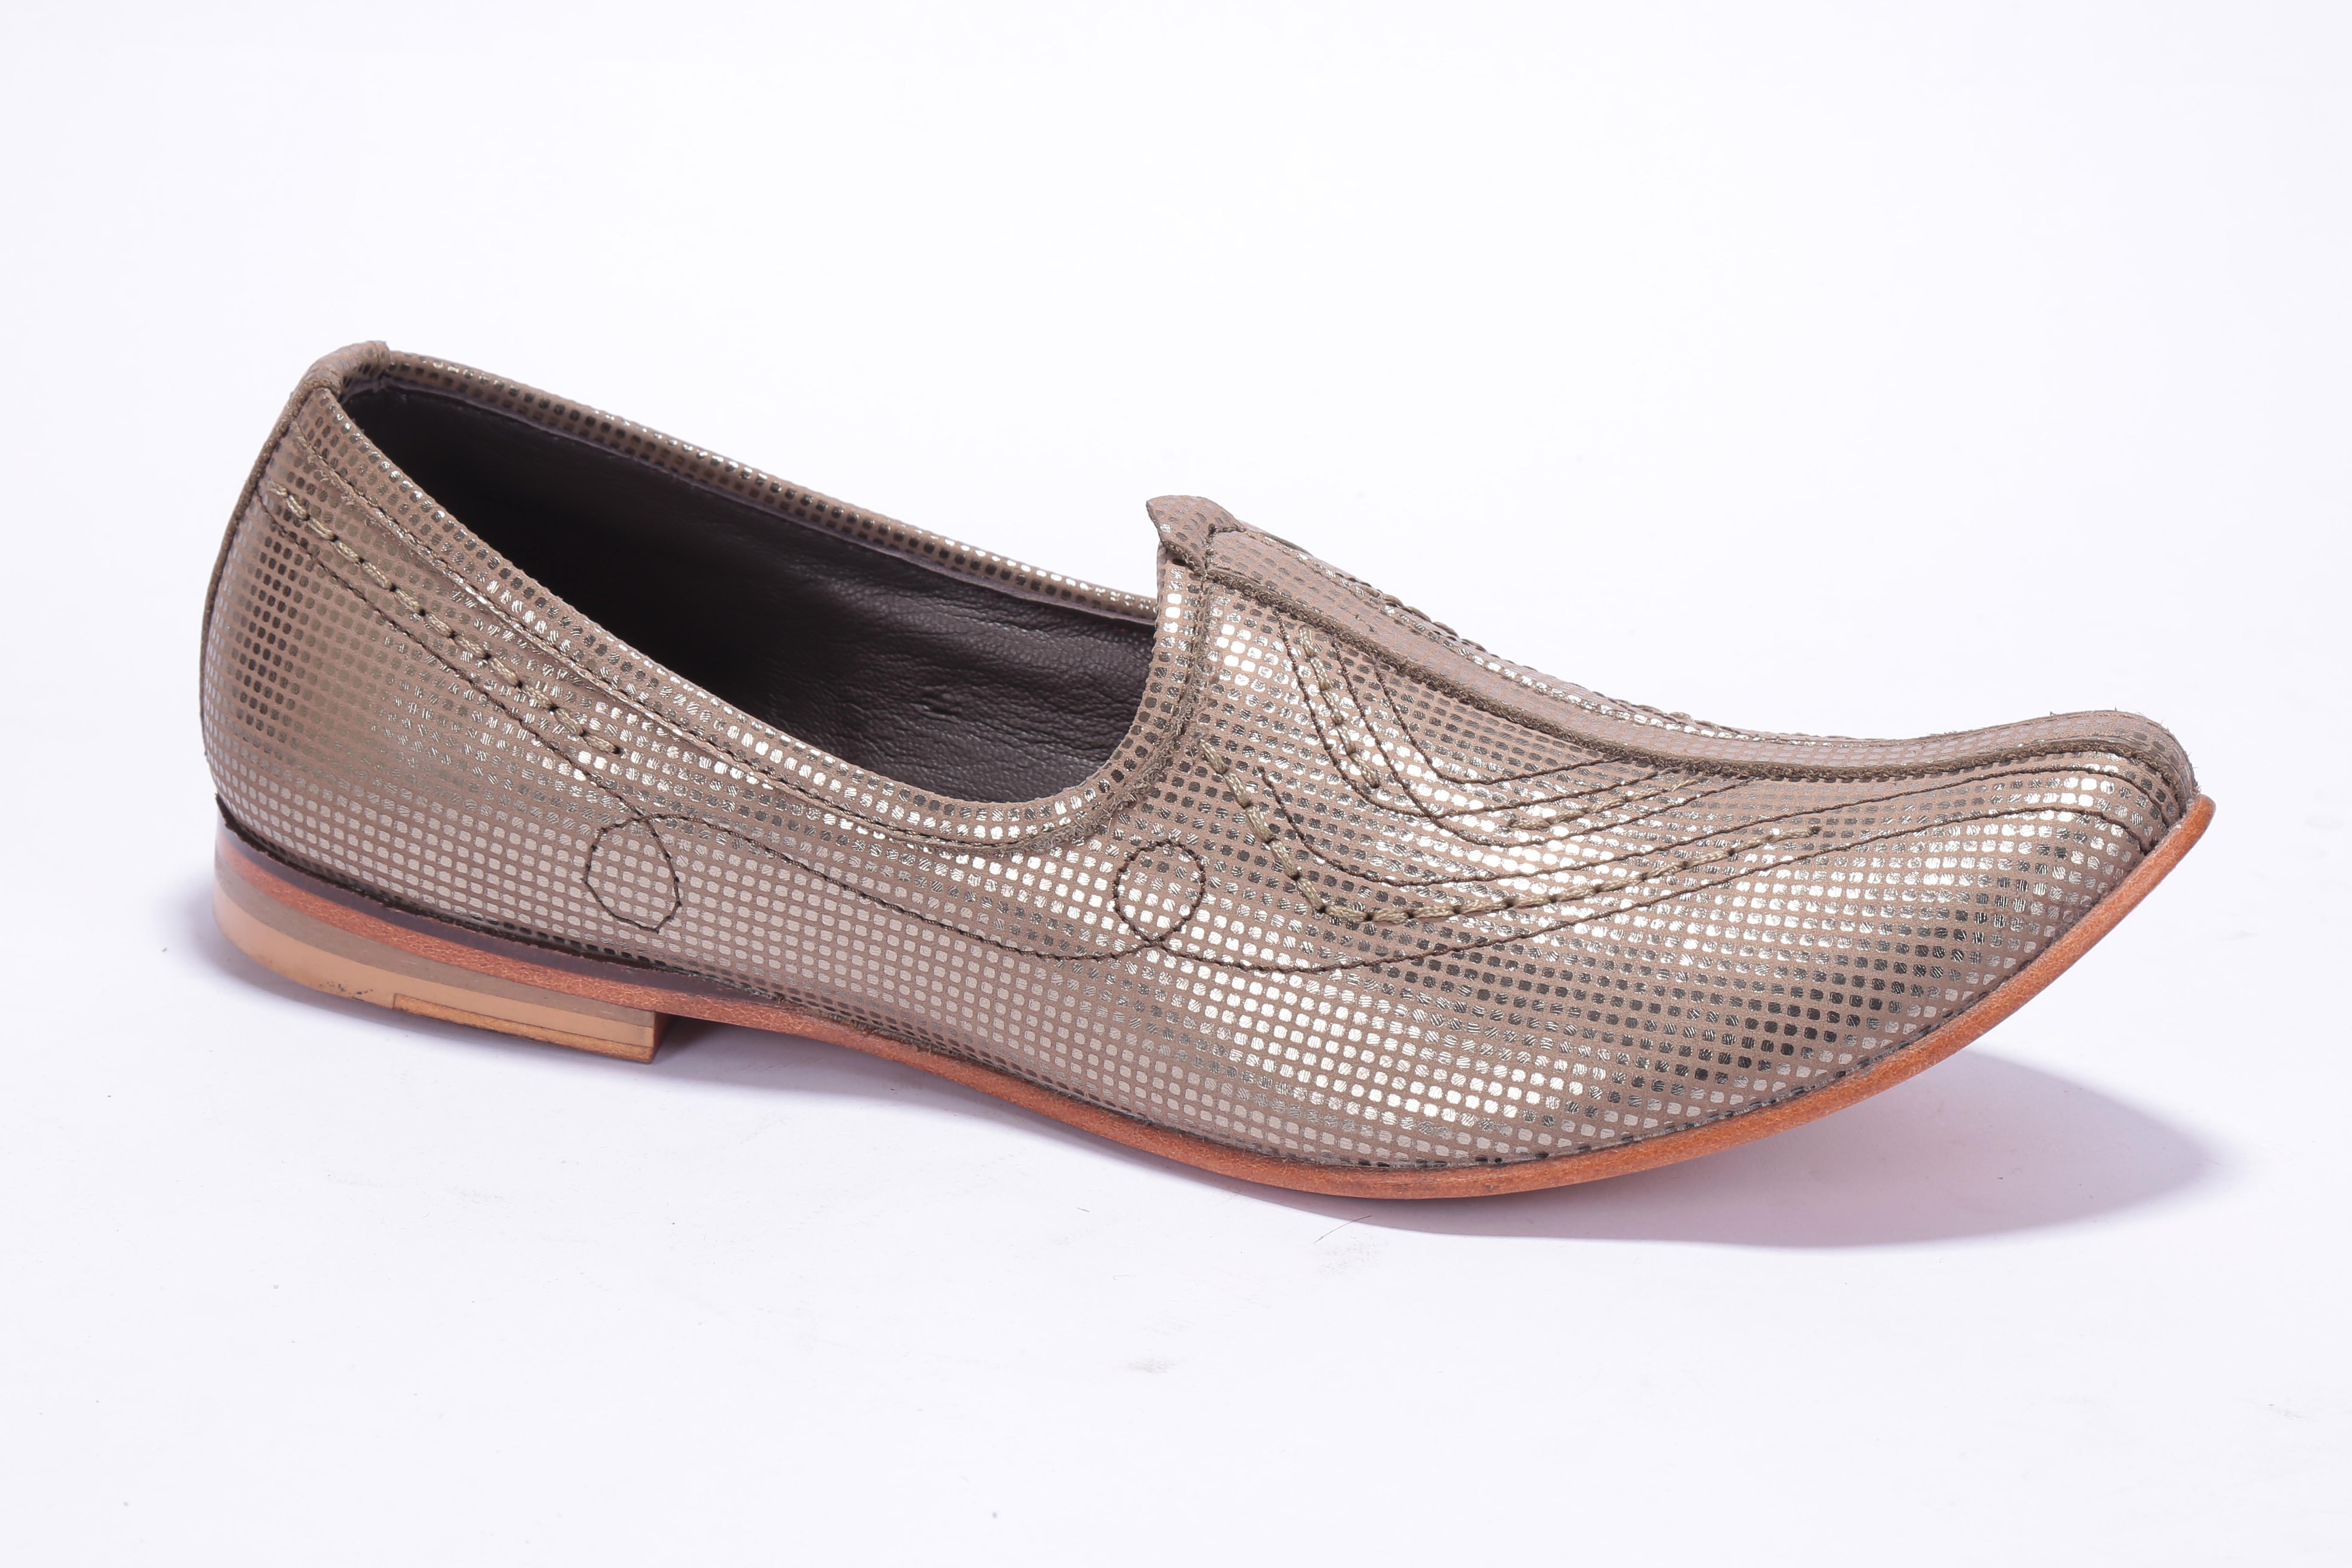 Complete your look with Egoss handcrafted leather jootis.